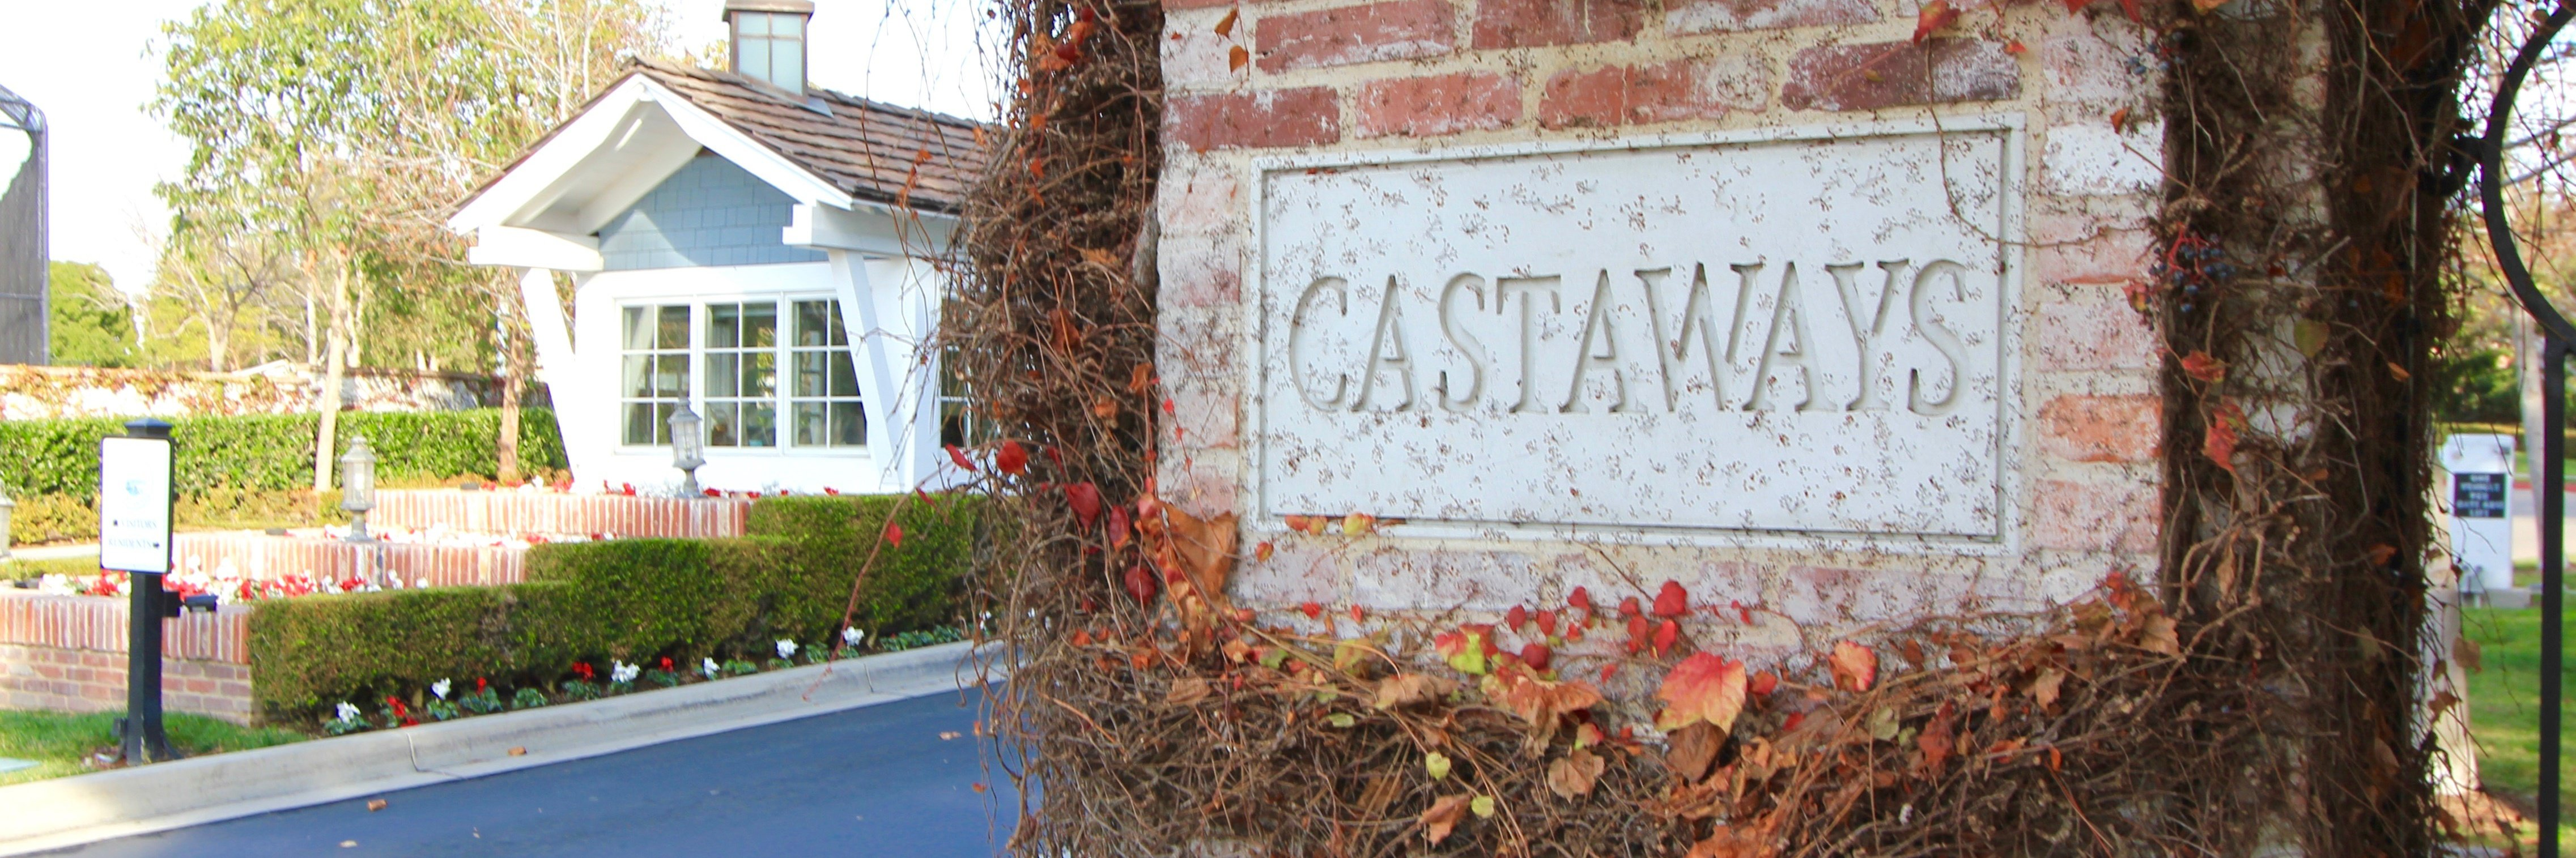 Castaways is a community located in the city of Newport Beach, CA